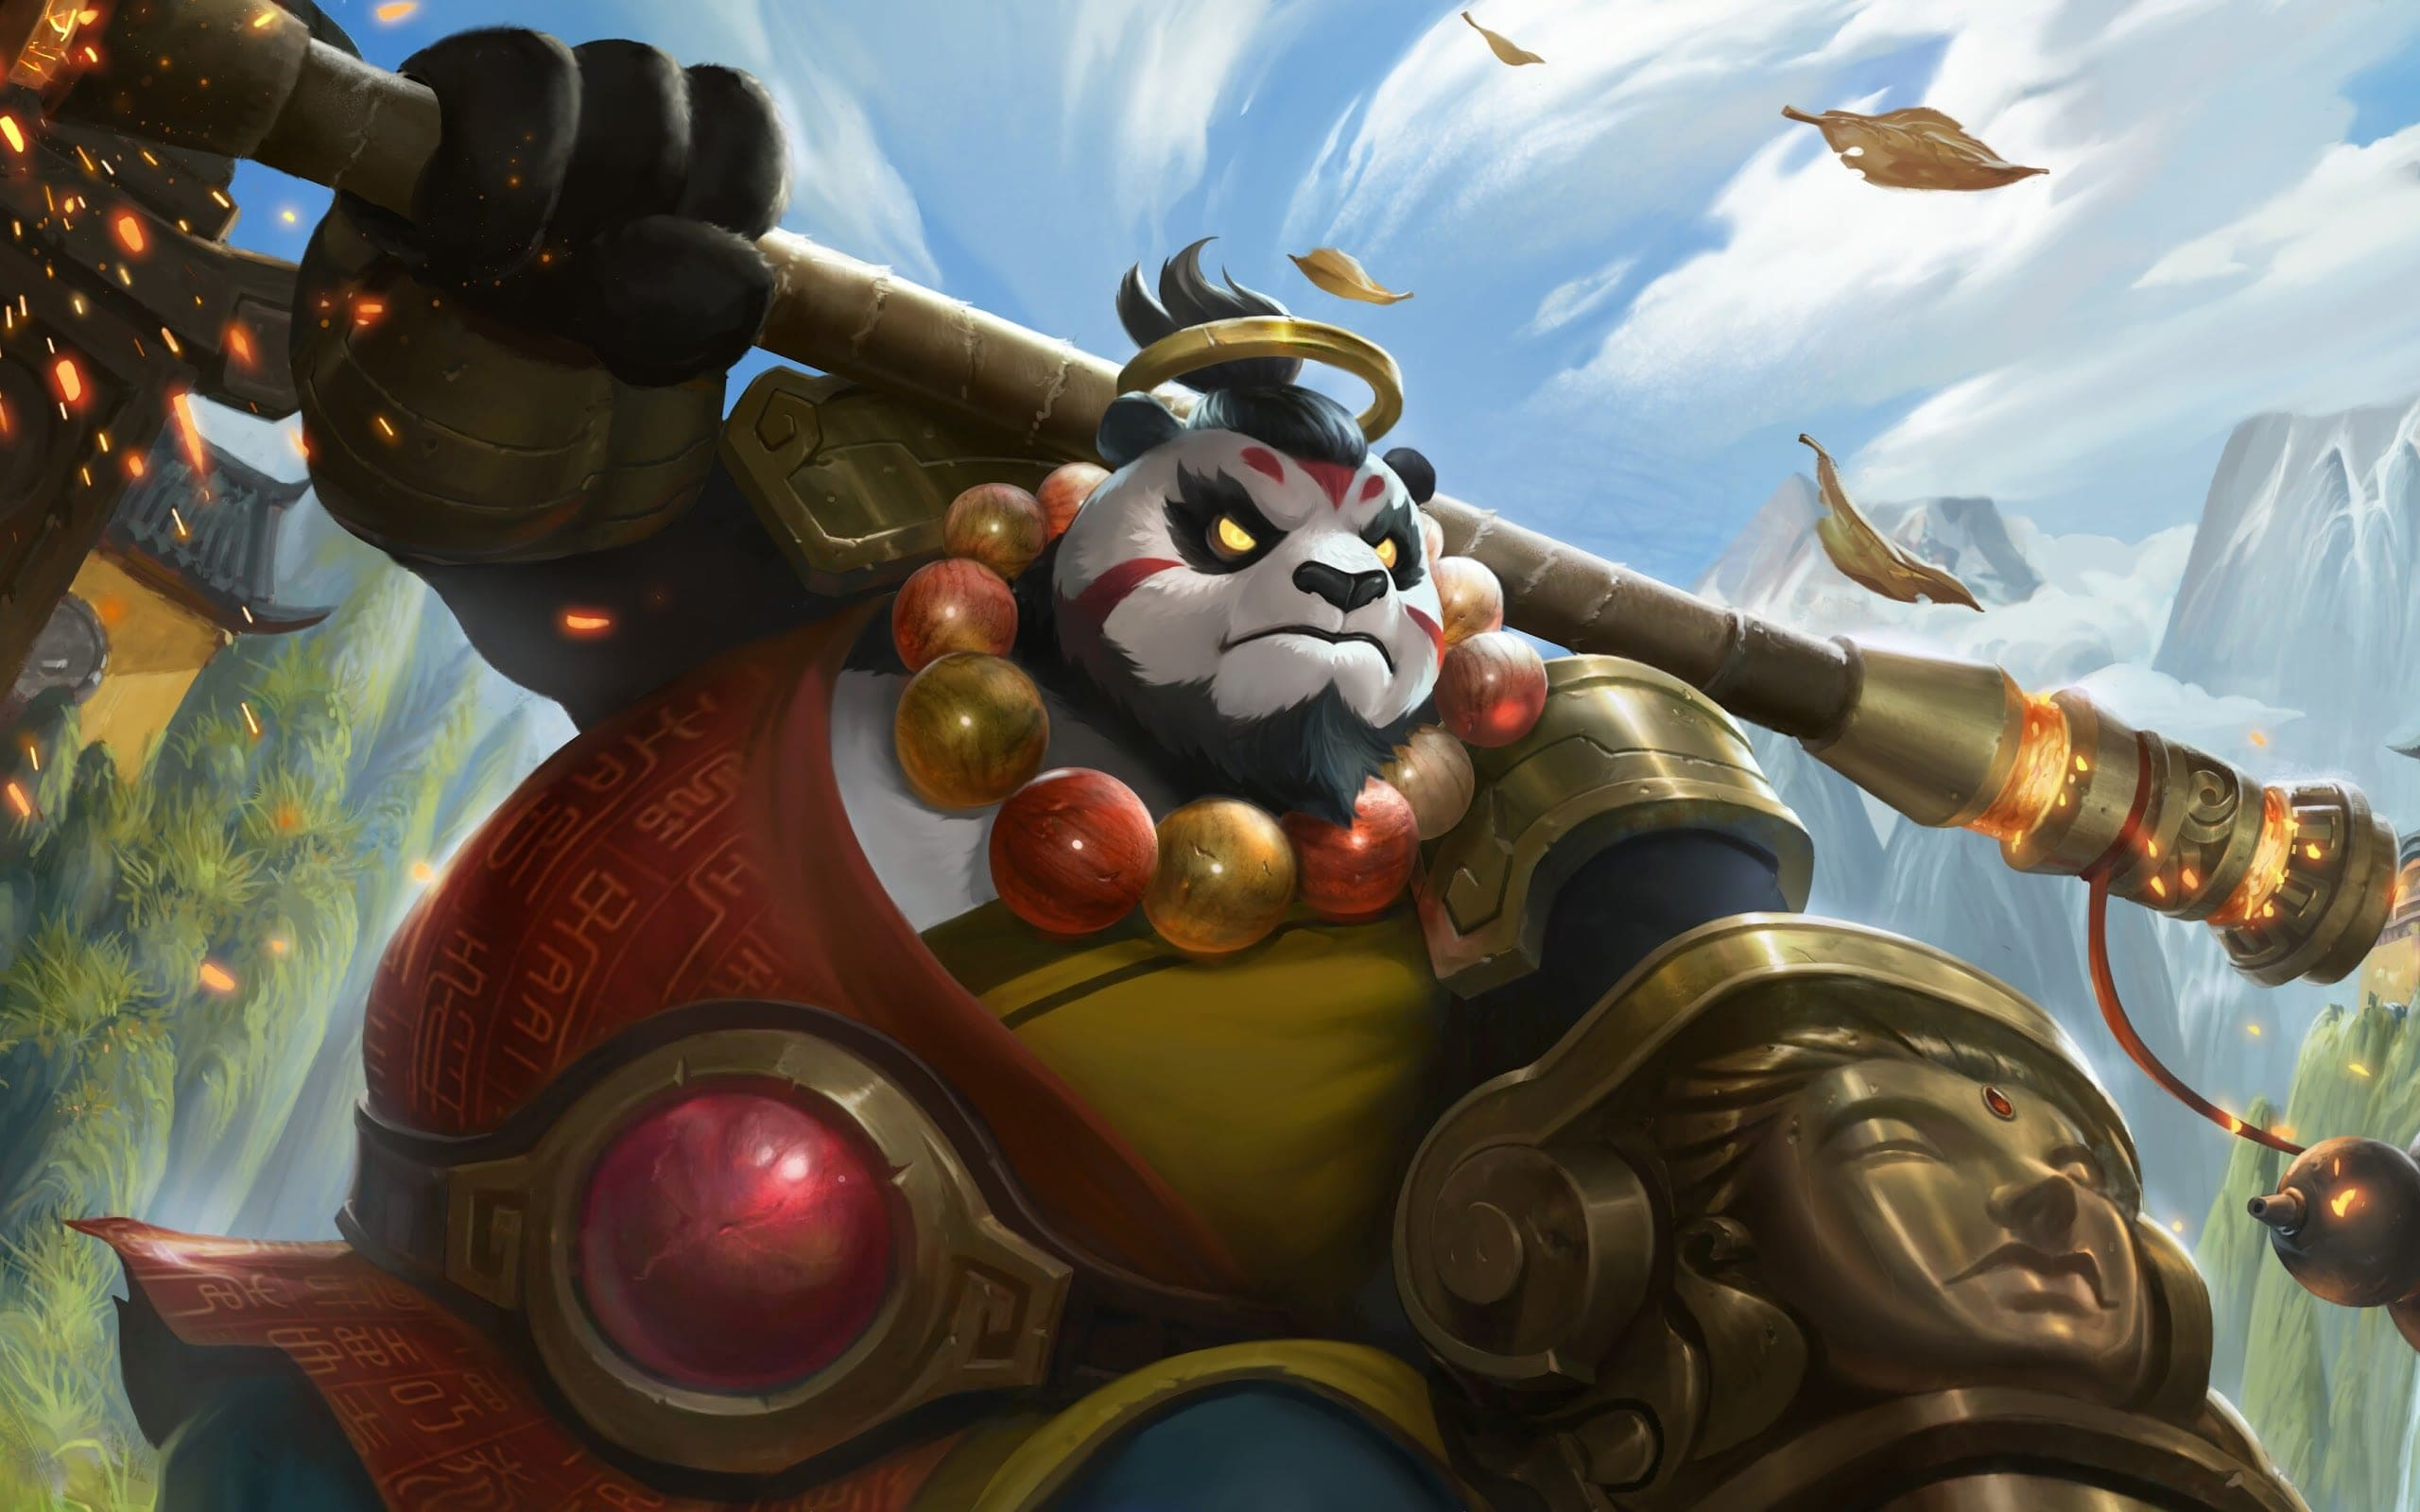 Akai Monk Wallpaper Mobile Legends HD for PC - Hobigame.id